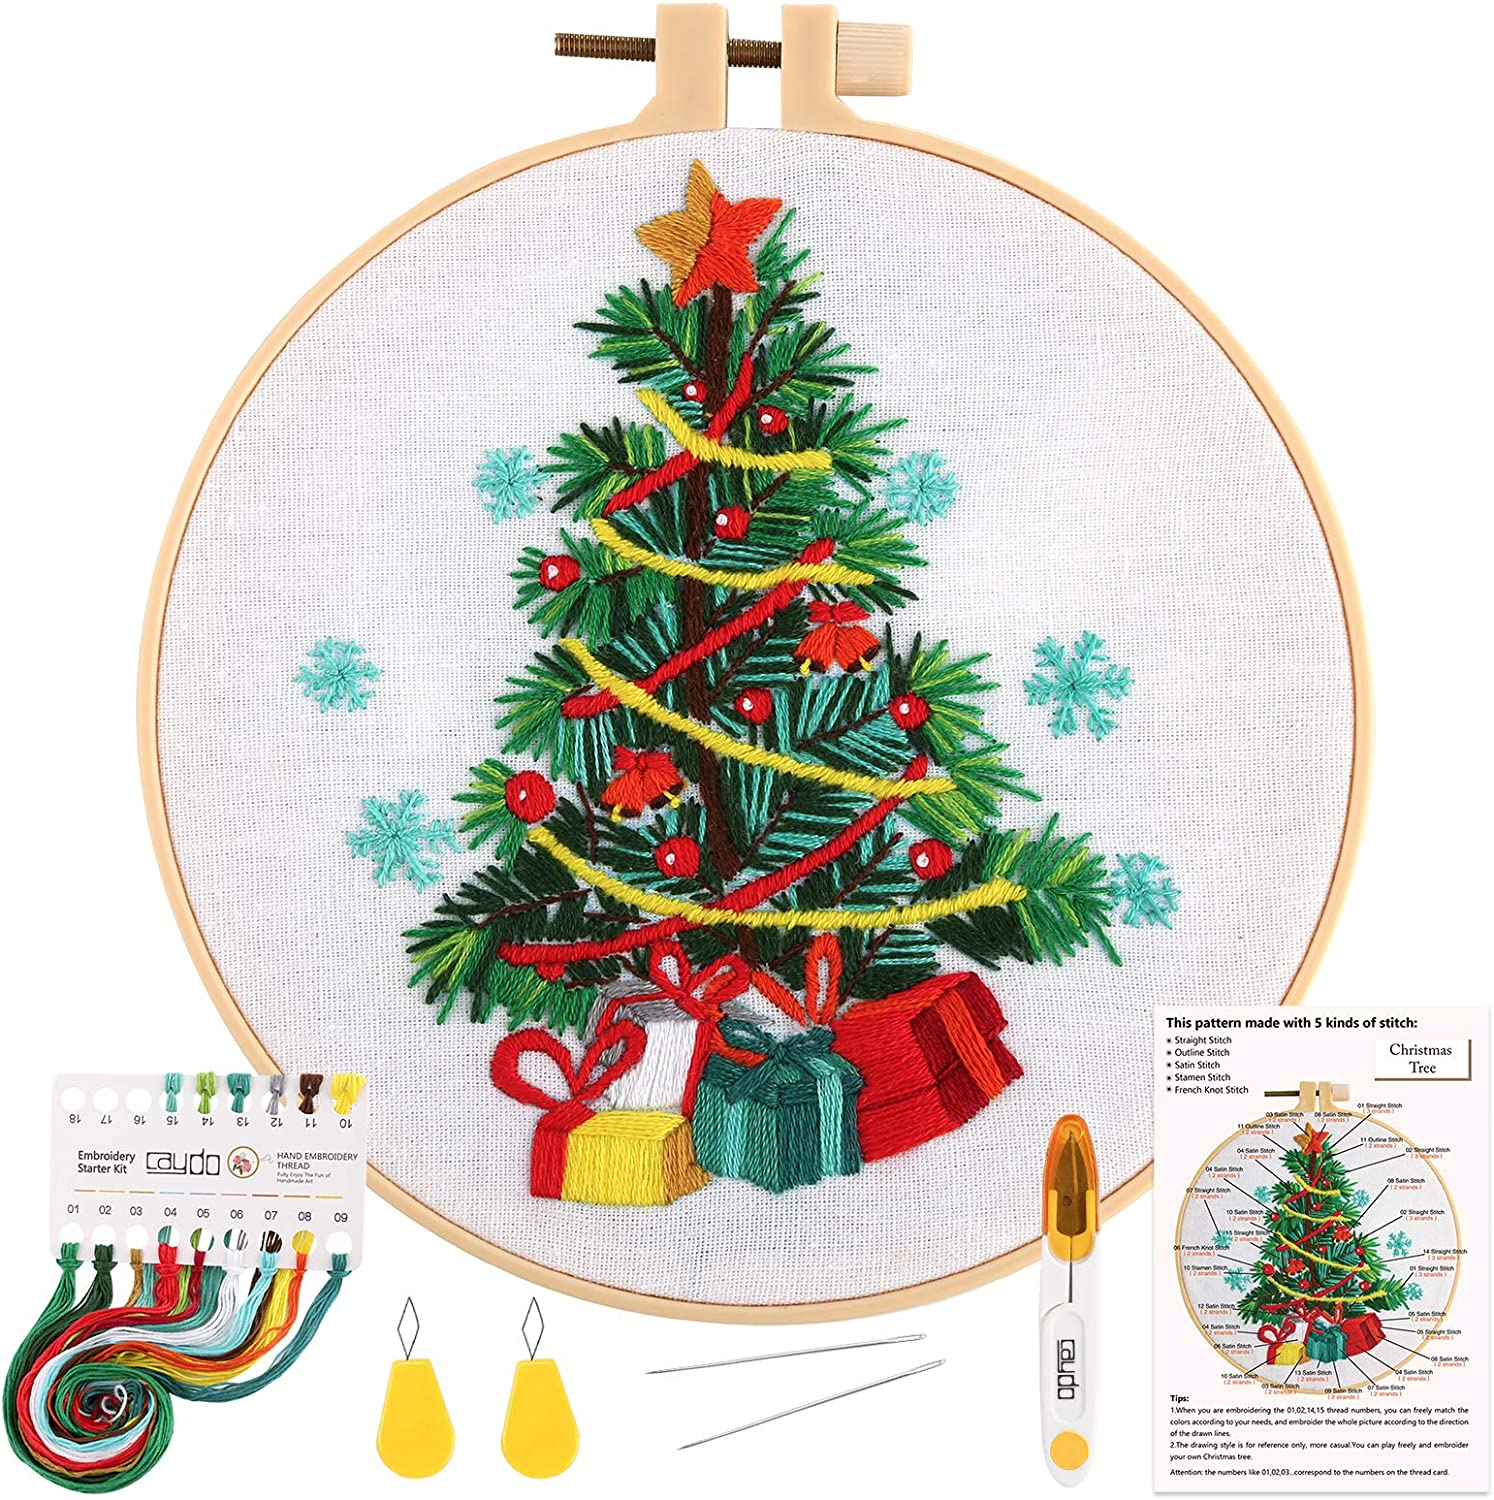 Caydo Full Range of Embroidery Kit for Beginner Embroidery Starter Kit Crafts Including Embroidery Clothes with Christmas Tree Stamped Pattern, Hoops, Color Threads and Instructions